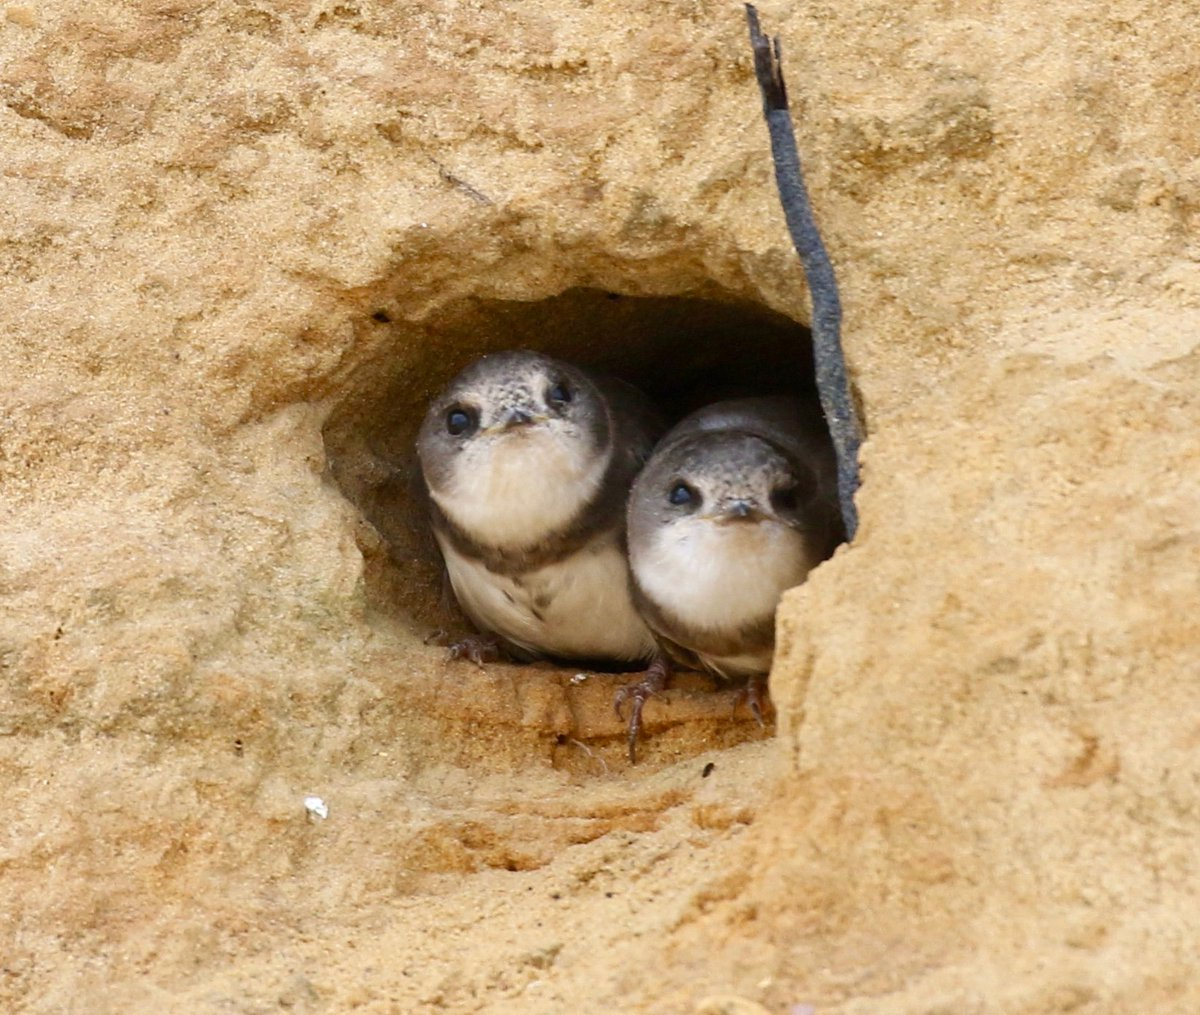 I love our garden birds but I also love the #SaveTheBactonSandMartins Help ensure their future & sign our petition  https://www. change.org/p/north-norfol k-district-council-help-secure-the-future-of-the-savethebactonsandmartins/exp/cl_/bandit-starter_cl_share_content_en-gb/v2/473644210?utm_content=bandit-starter_cl_share_content_en-gb%3Av2&recruited_by_id=1c0d54e0-c20c-11e5-aaf4-2bc0922b8ac4&recruiter=473644210&utm_source=share_petition&utm_medium=copylink&utm_campaign=share_petition&utm_term=share_petition  …  #mondaythoughts <br>http://pic.twitter.com/SA16wkPIc4